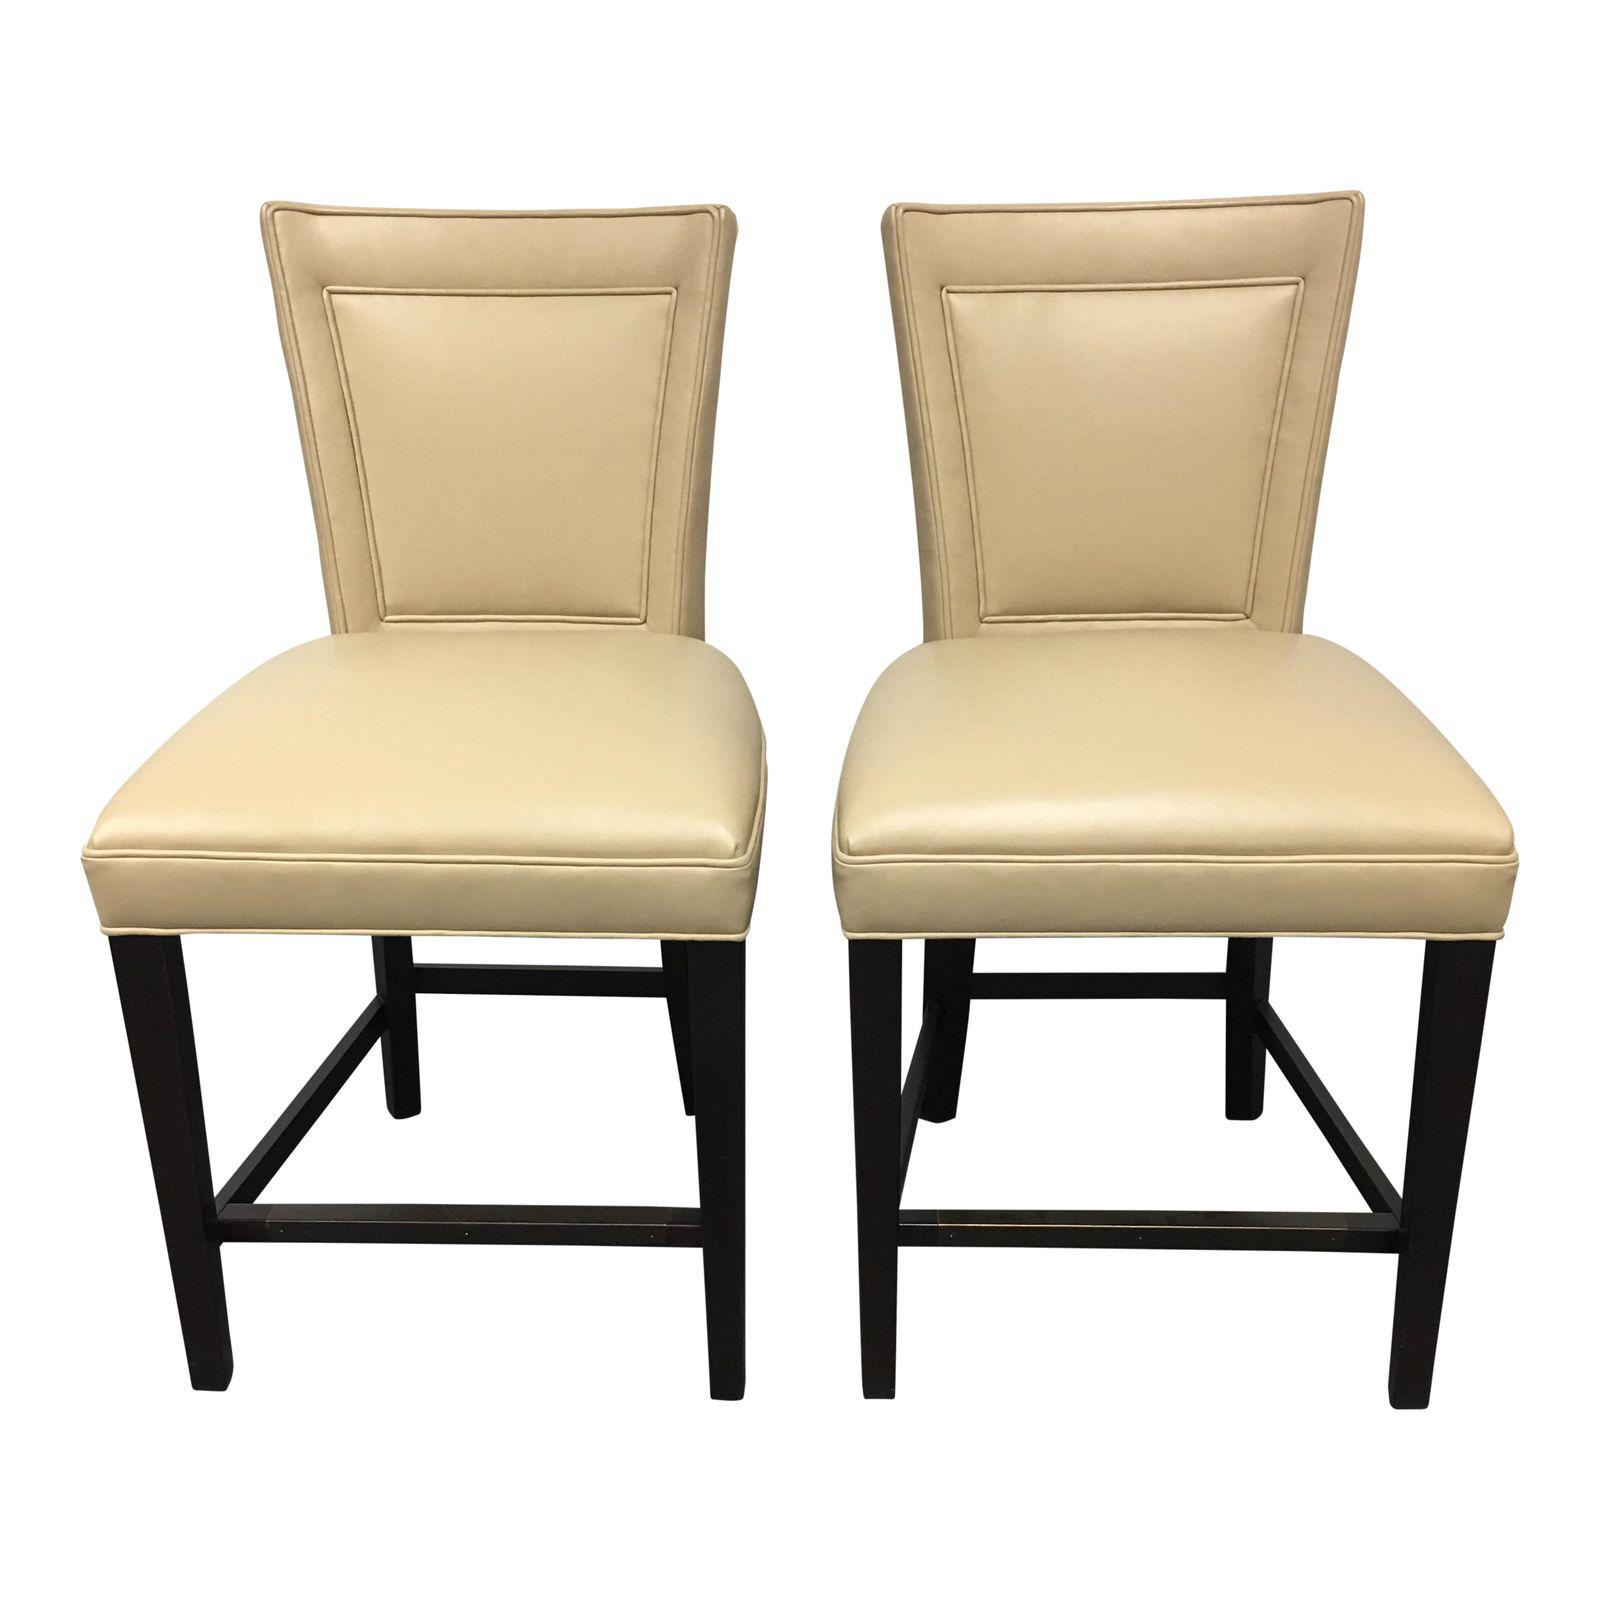 Outstanding New Pair Of Hickory Chair Flare Back Counter Stools Alphanode Cool Chair Designs And Ideas Alphanodeonline